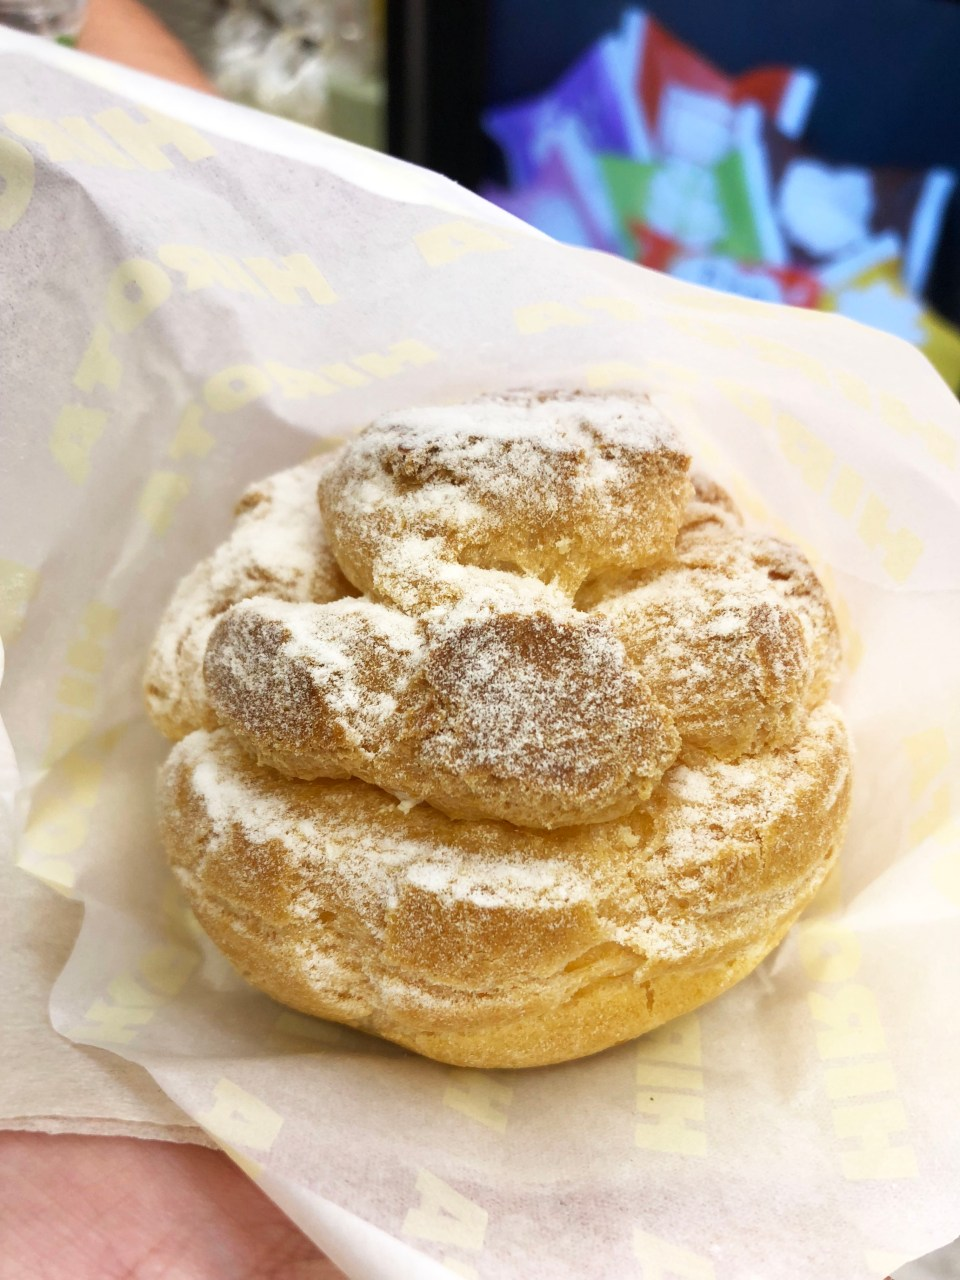 Shinjuku Station - cream puff